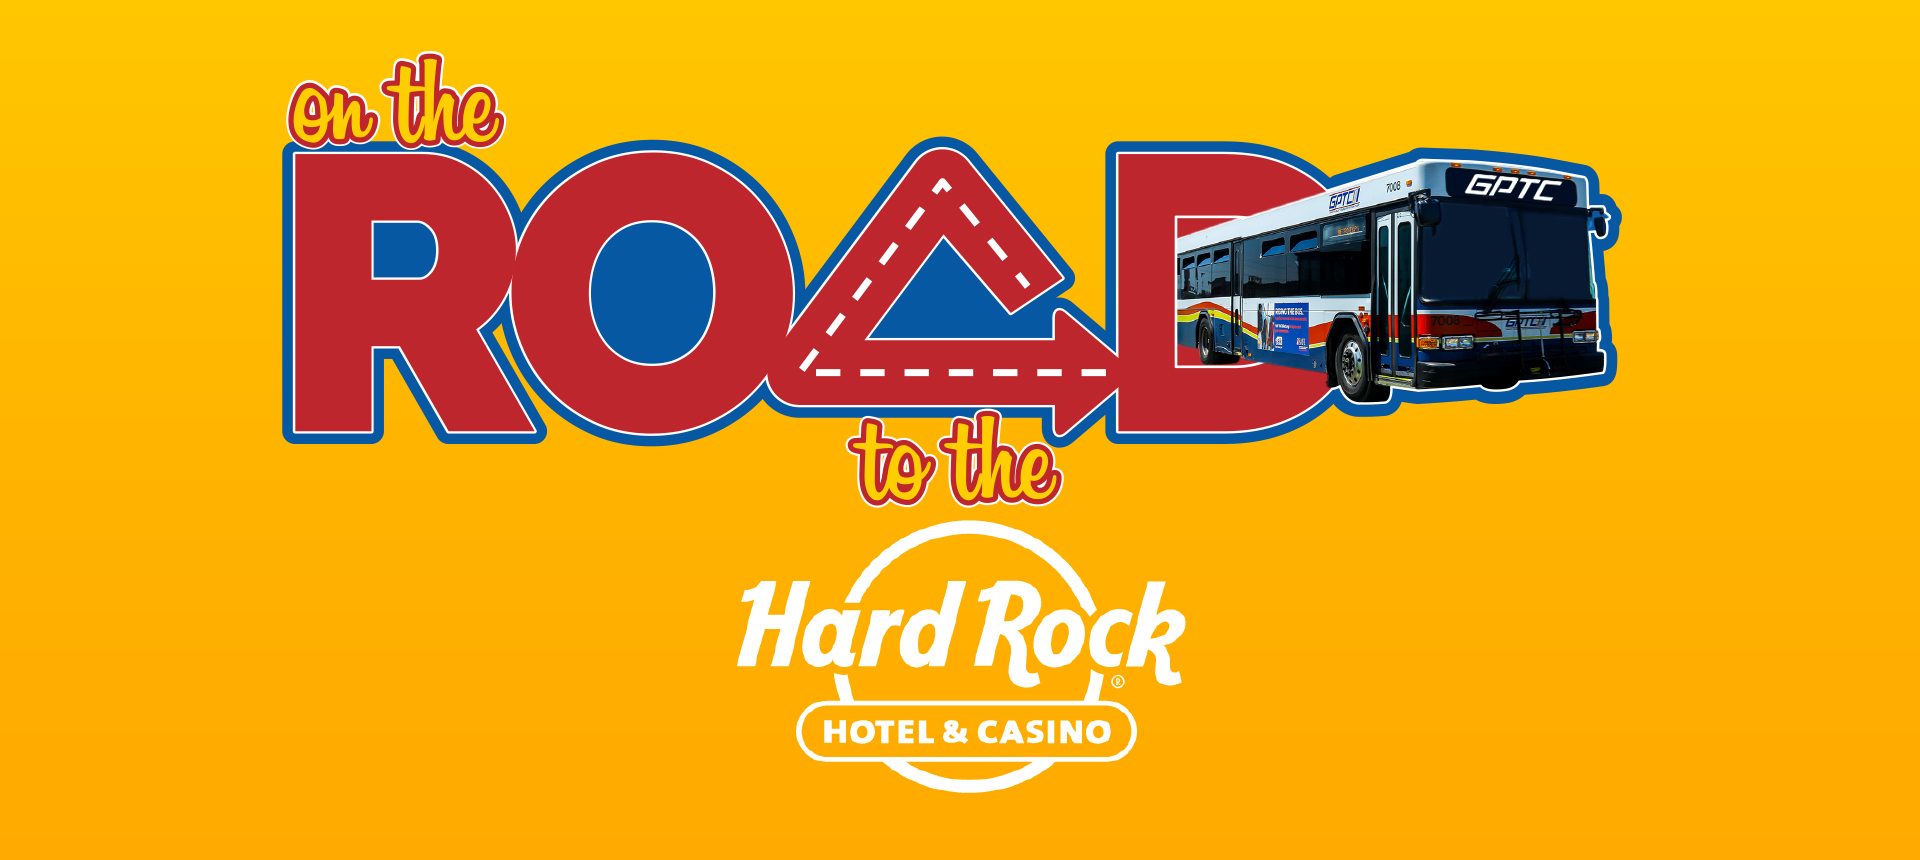 Road to the Hard Rock